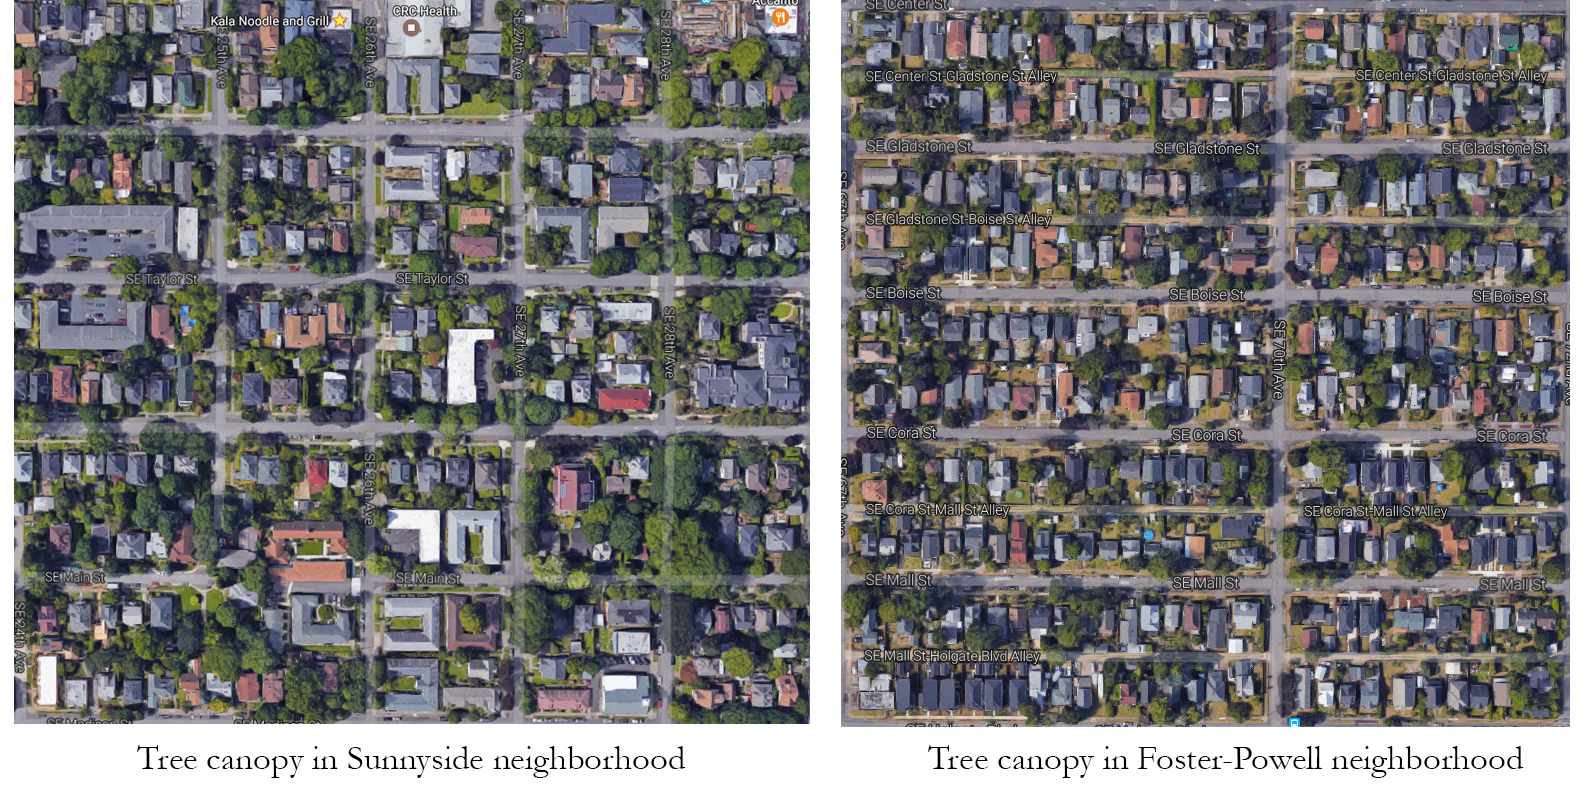 Difference of tree canopy in high- and low-income neighborhoods